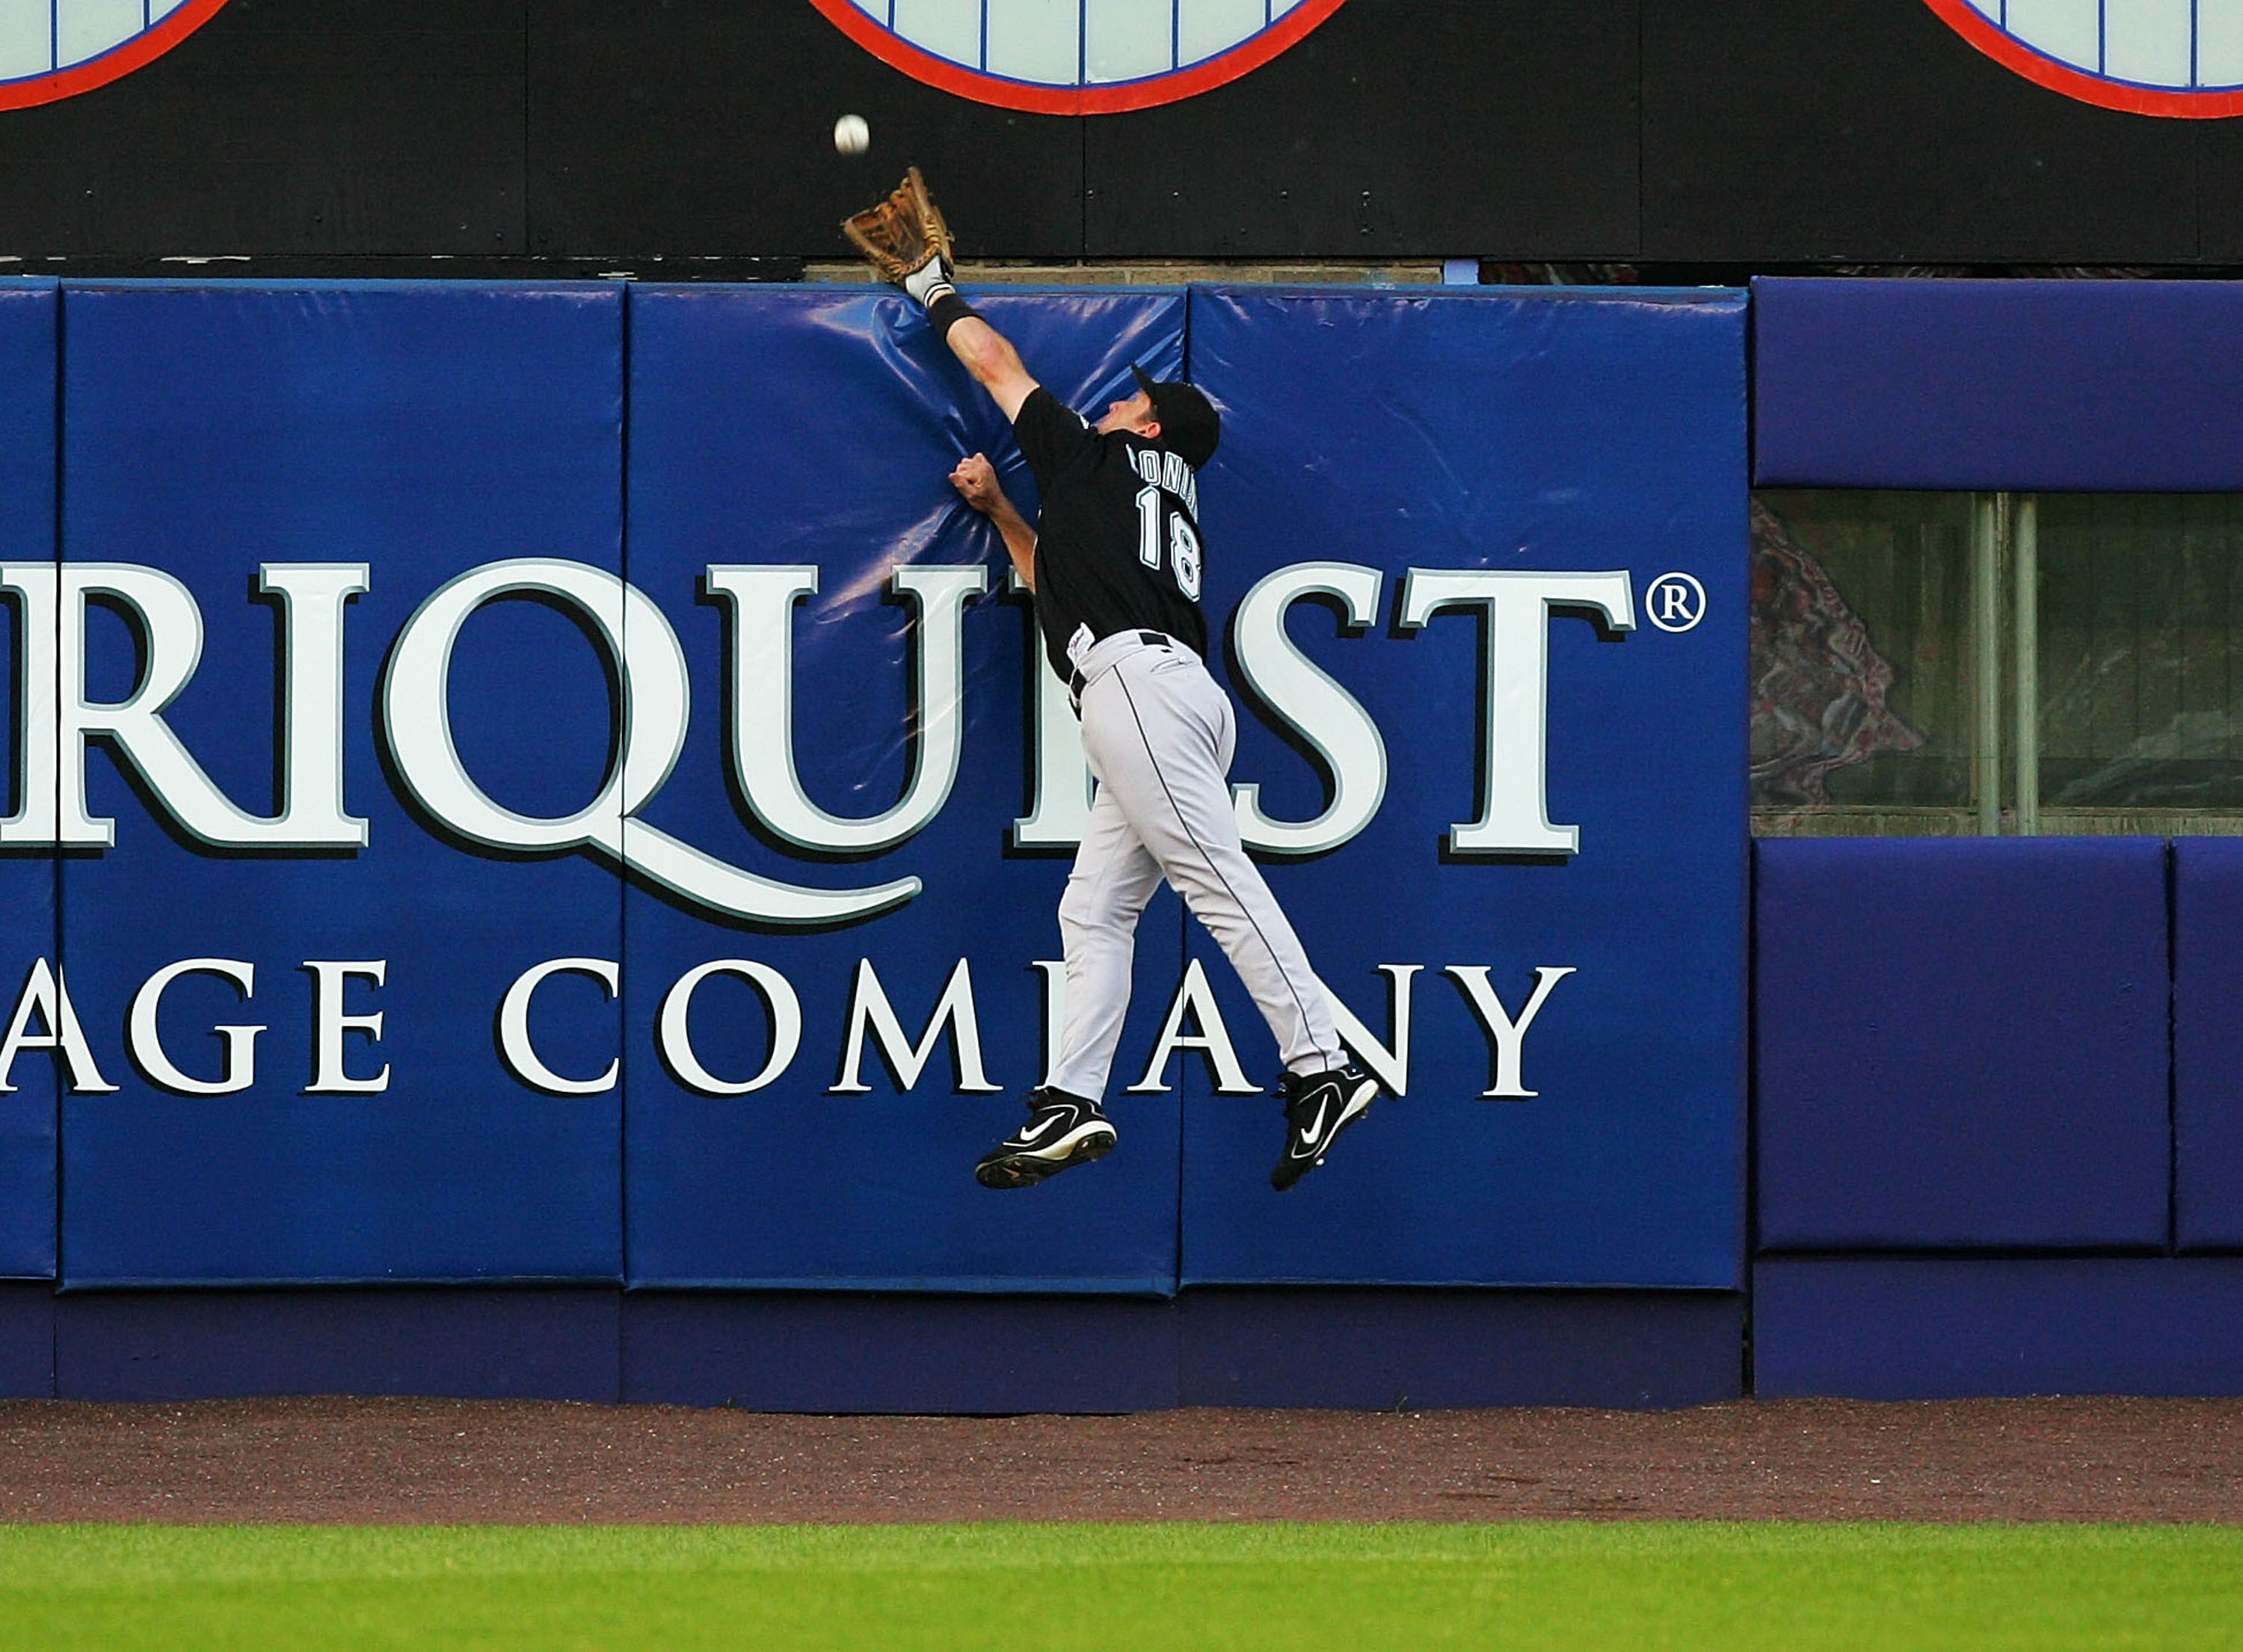 NEW YORK - JULY 19:  Jeff Conine #18 of the Florida Marlins leaps but can not catch a three-run home run hit by Shane Spencer #43 of the New York Mets on July 19, 2004, at Shea Stadium in Flushing, New York.  (Photo by Ezra Shaw/Getty Images)